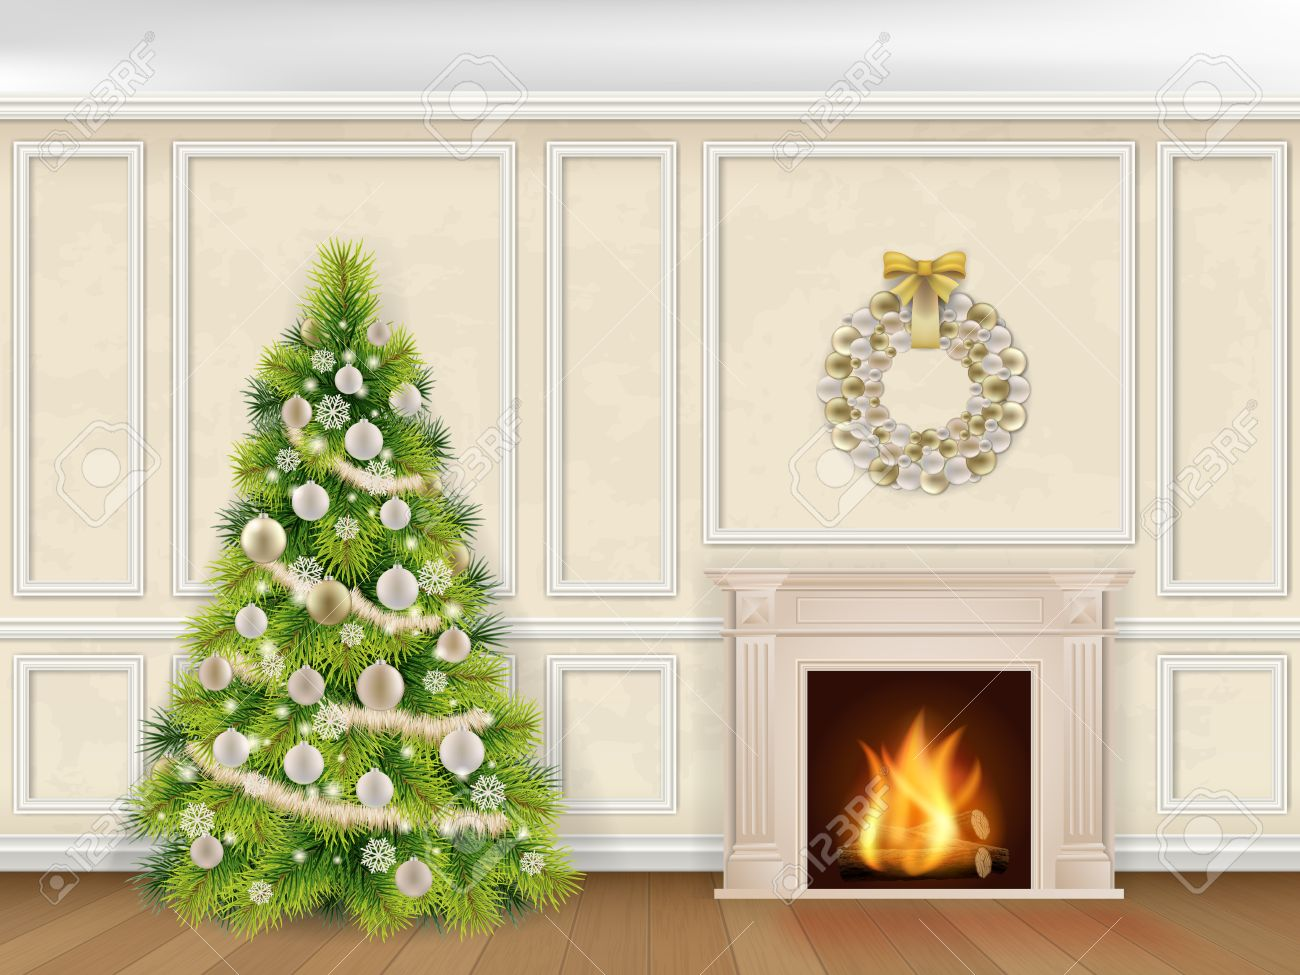 Christmas interior in classic style with fireplace and fir tree on wall decorated moulding panels background. Stock Vector - 47983623